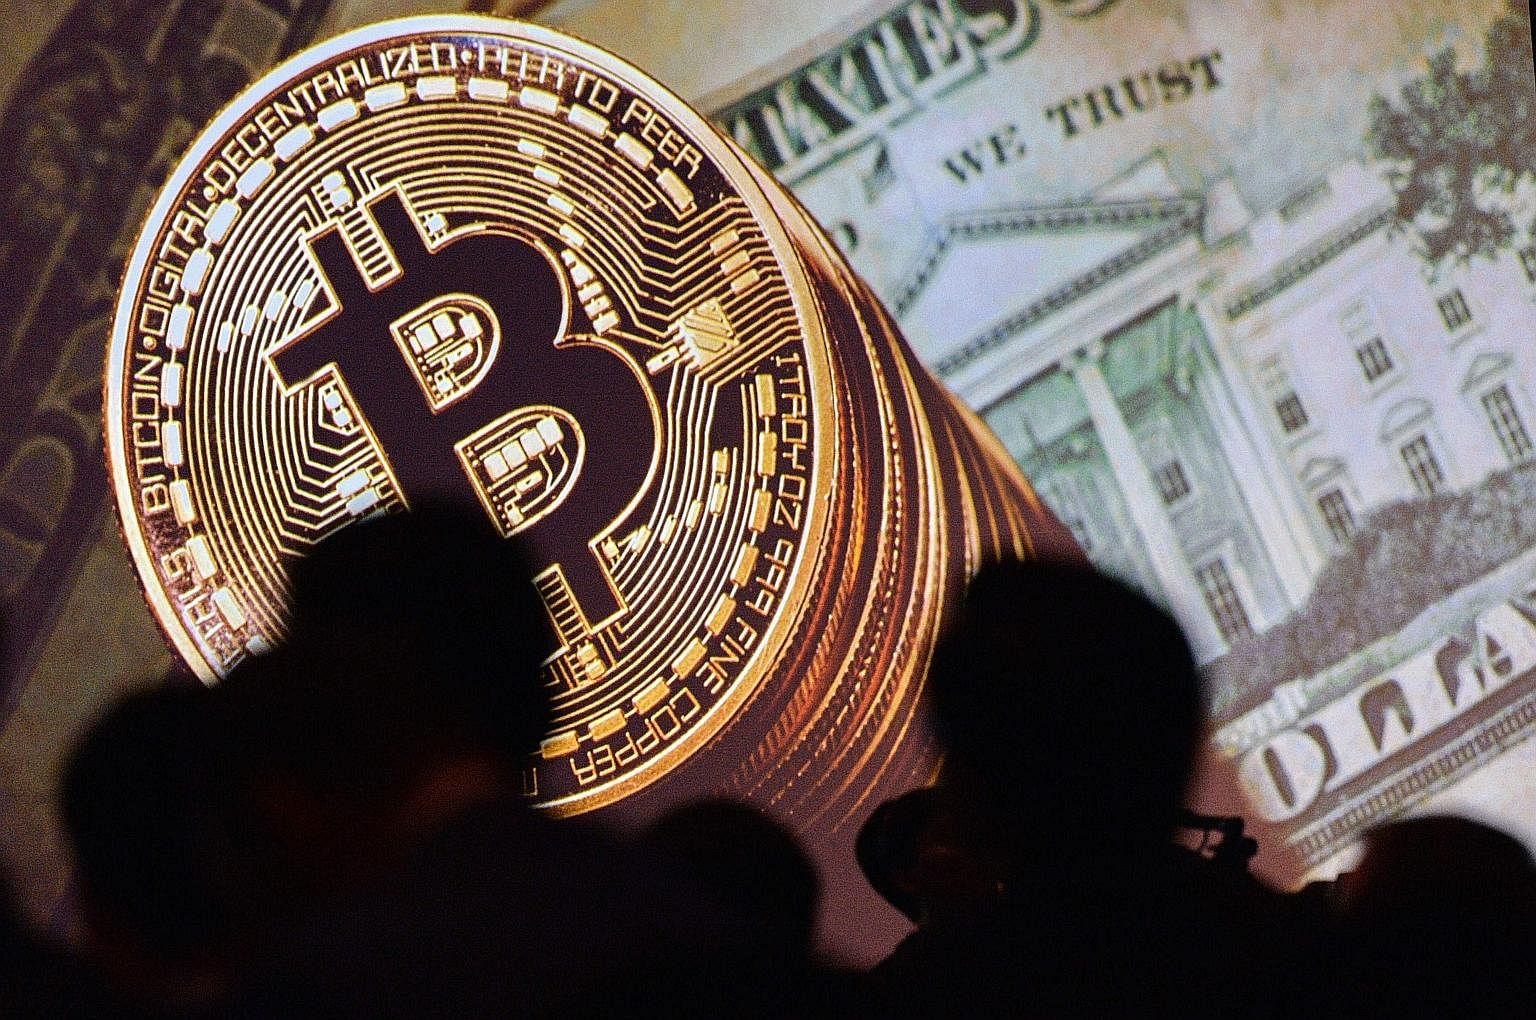 The craze over cryptocurrencies such as bitcoin and ethereum is fuelling fears that a bubble is forming, involving another technology with huge potential - the blockchain.